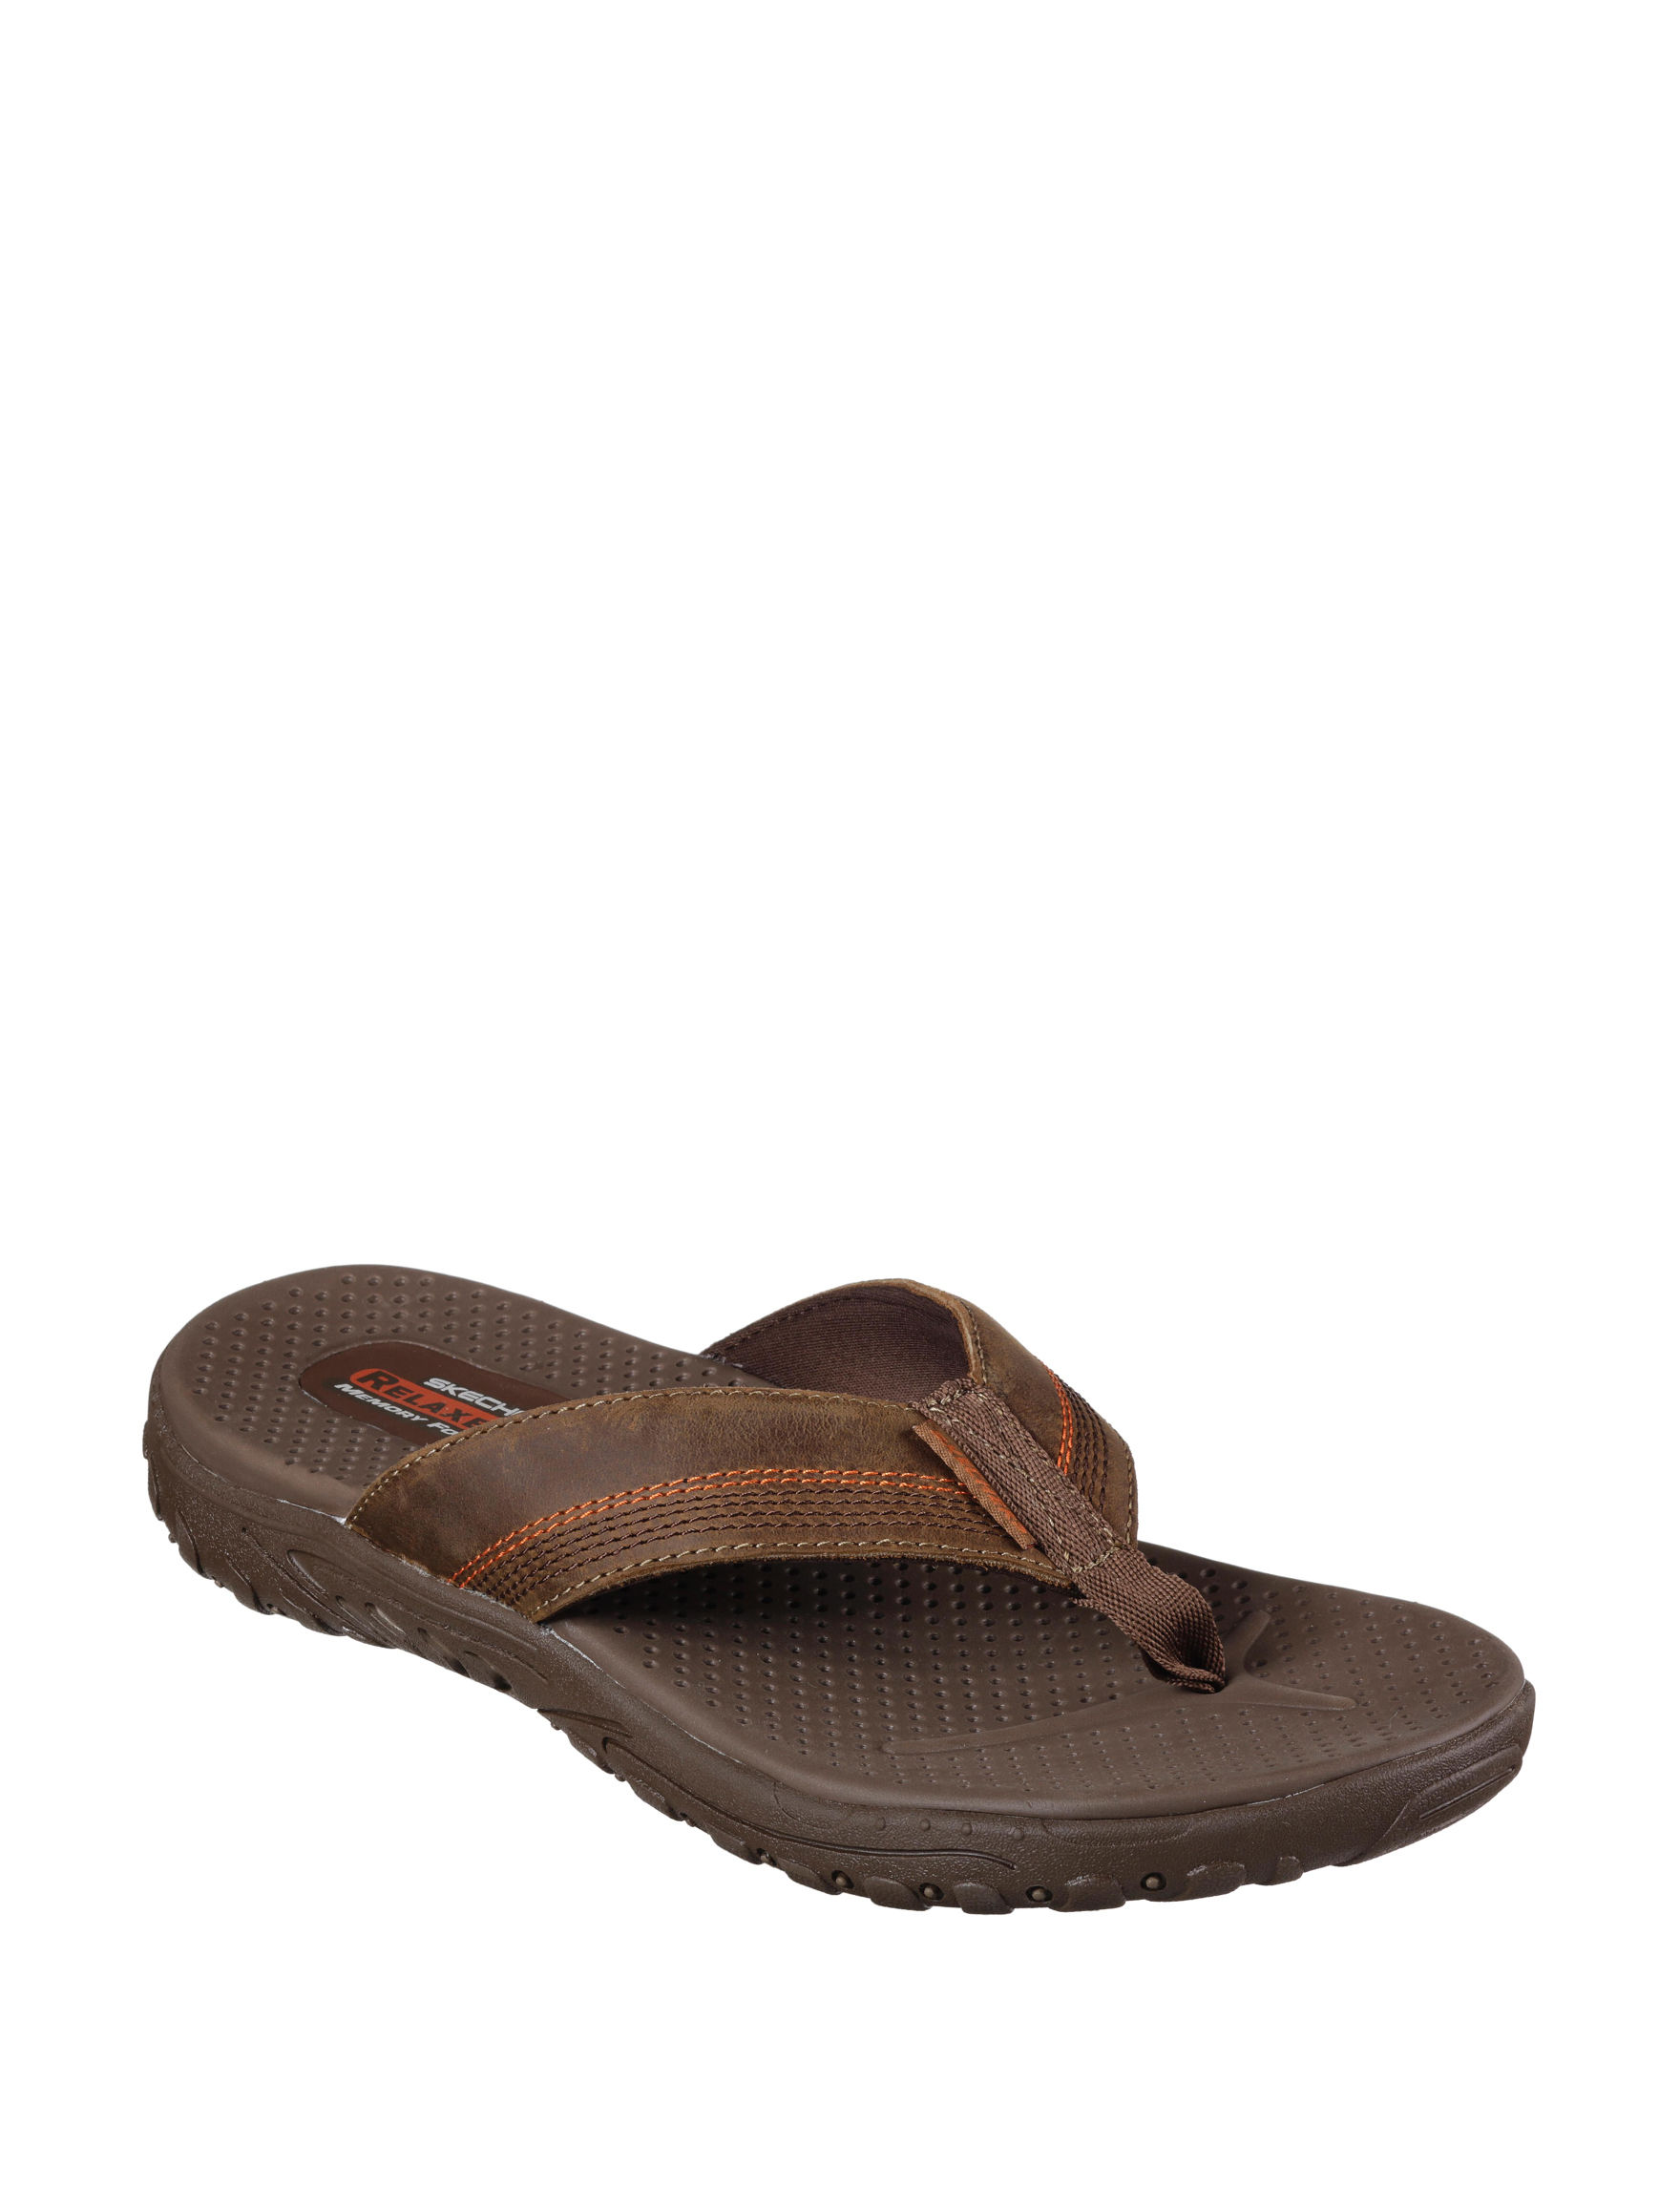 d1f471a695b6 Skechers Men s Relaxed Fit Reggae Cobano Sandals